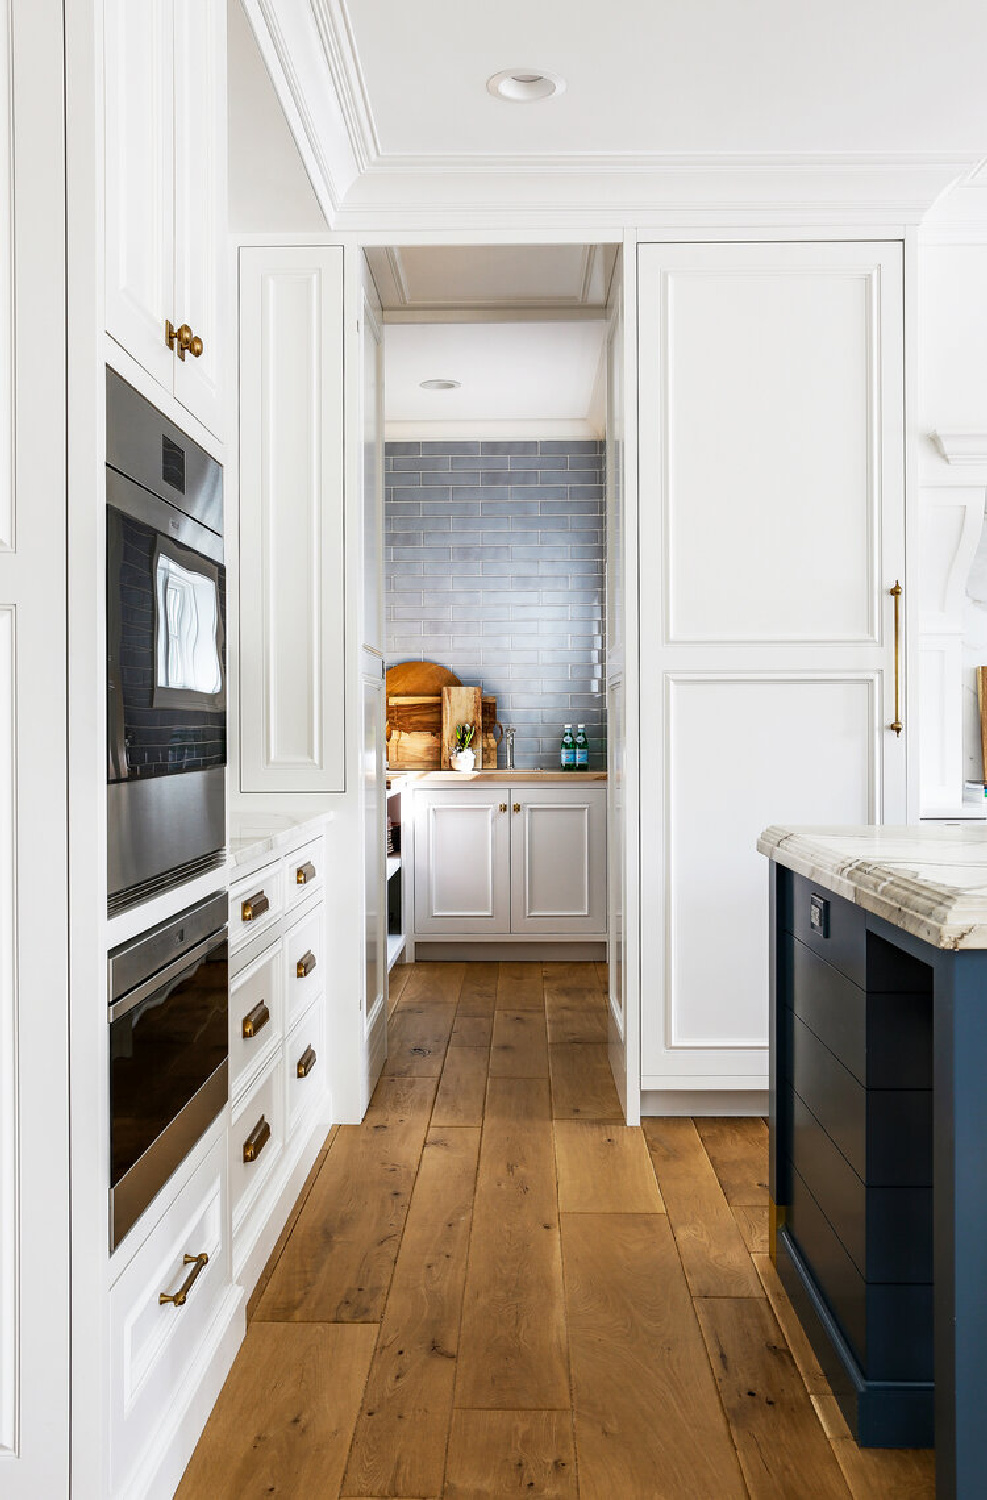 White Shaker cabinets in a classic kitchen by Edward Deegan Architects. Find more blue kitchen ideas in this story! #shakercabinets #classickitchen #wallovens